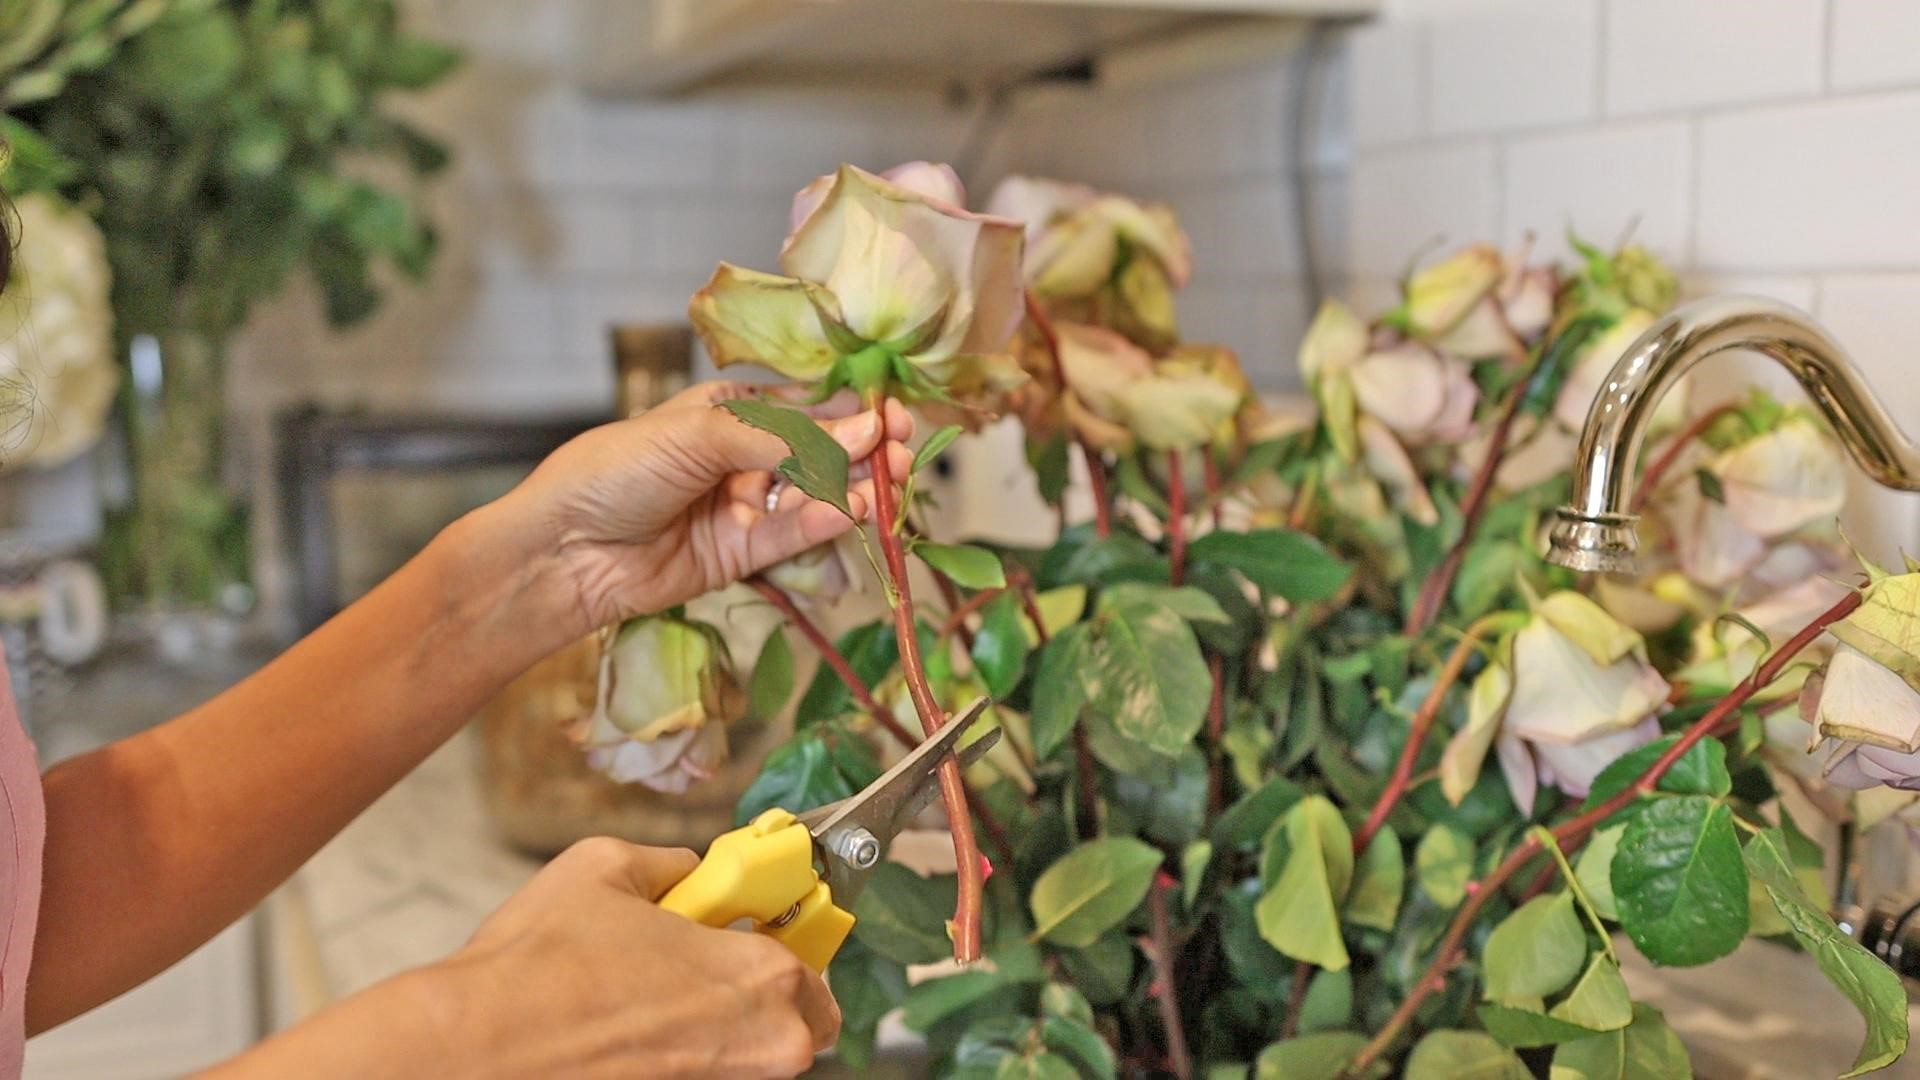 Trimming a bunch of roses at a diagonal angle with floral shears